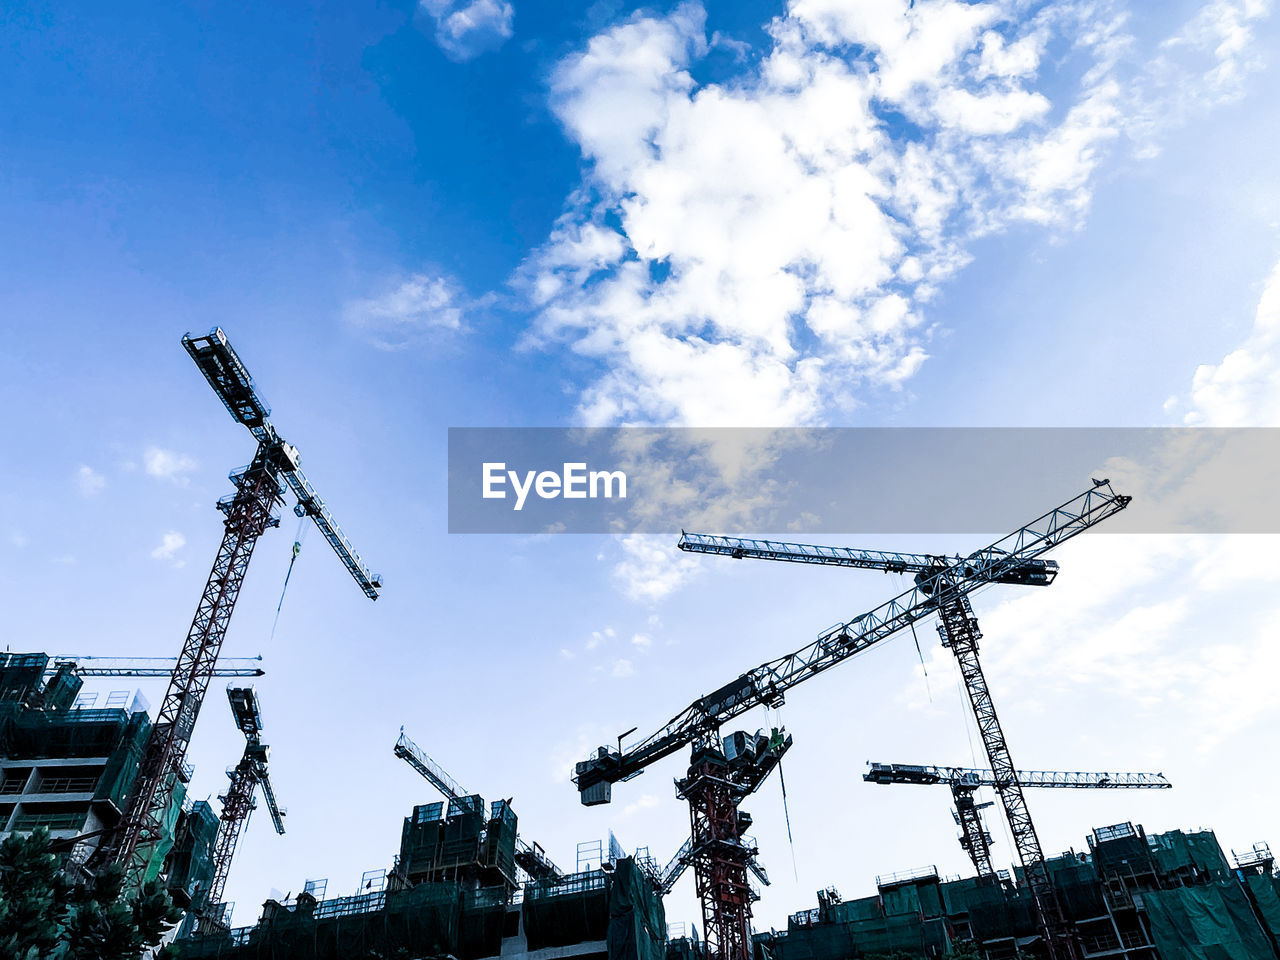 LOW ANGLE VIEW OF CRANES AGAINST CONSTRUCTION SITE